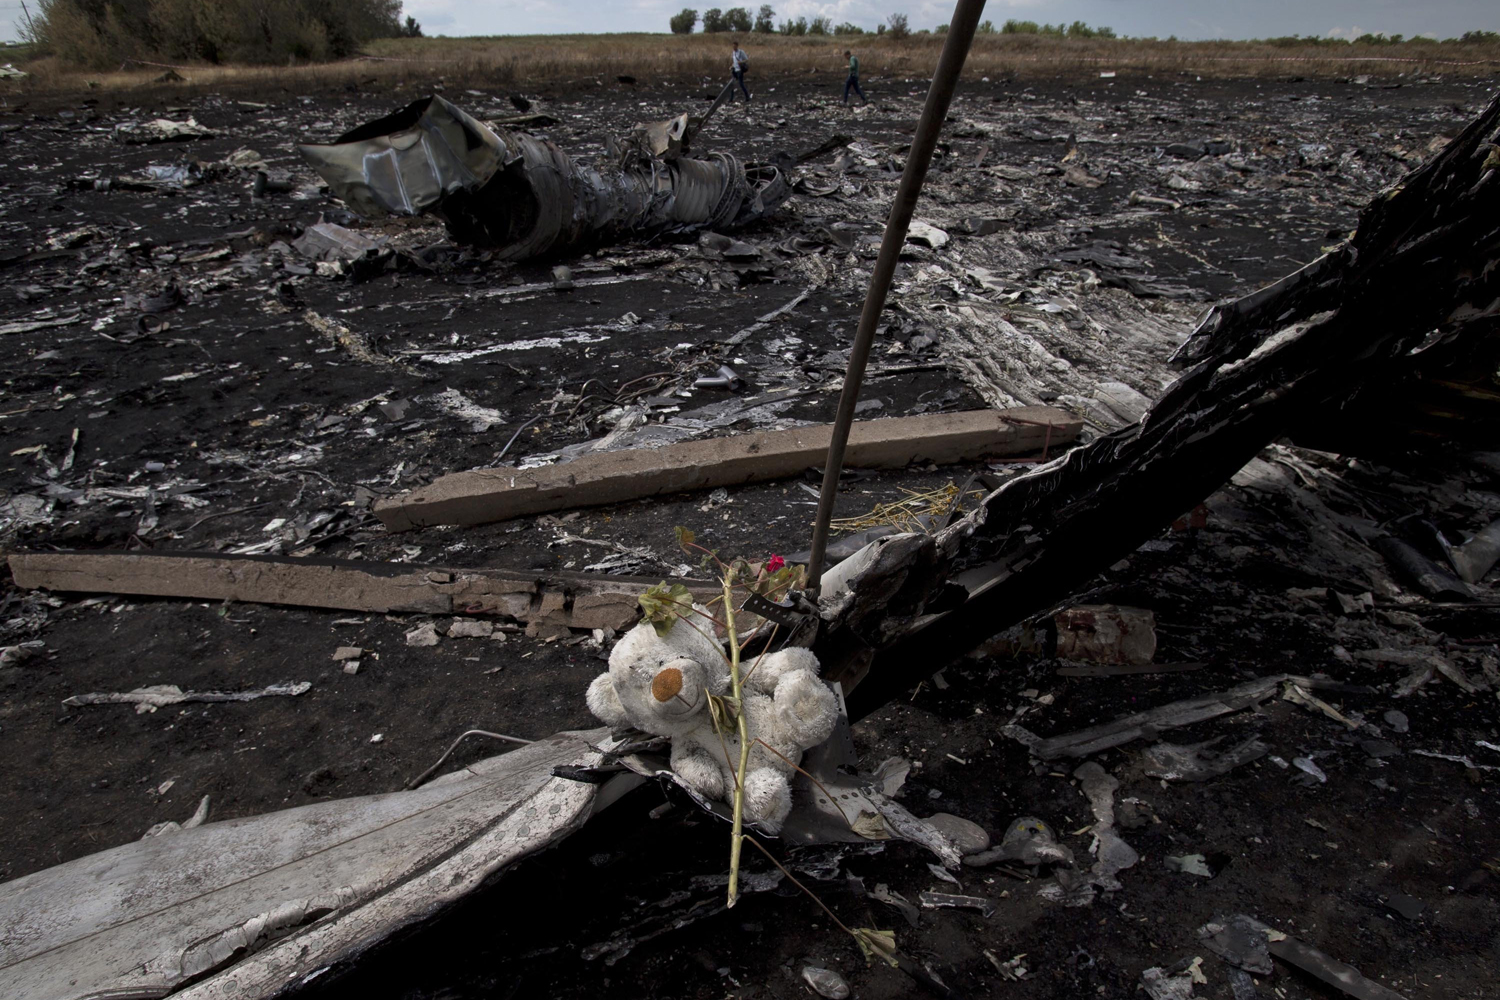 Jul. 22, 2014. A toy bear is placed on charred plane fuselage parts, as people walk through the crash site of Malaysia Airlines Flight 17 near the village of Hrabove, eastern Ukraine.